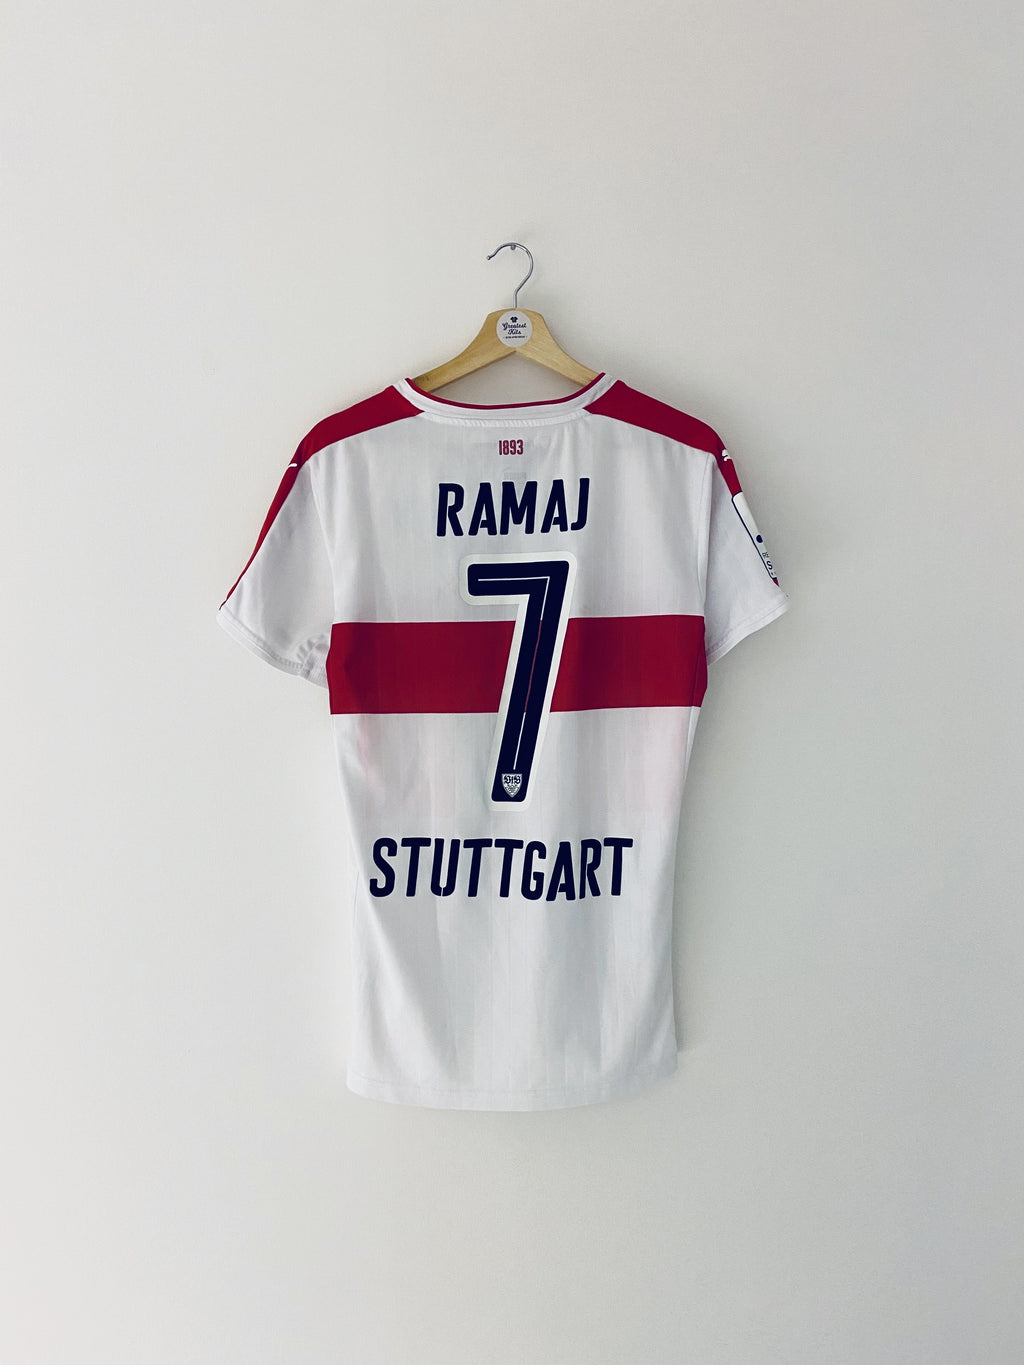 2016/17 Stuttgart II *Match Issue* Home Shirt Ramaj #7 (M) 9/10